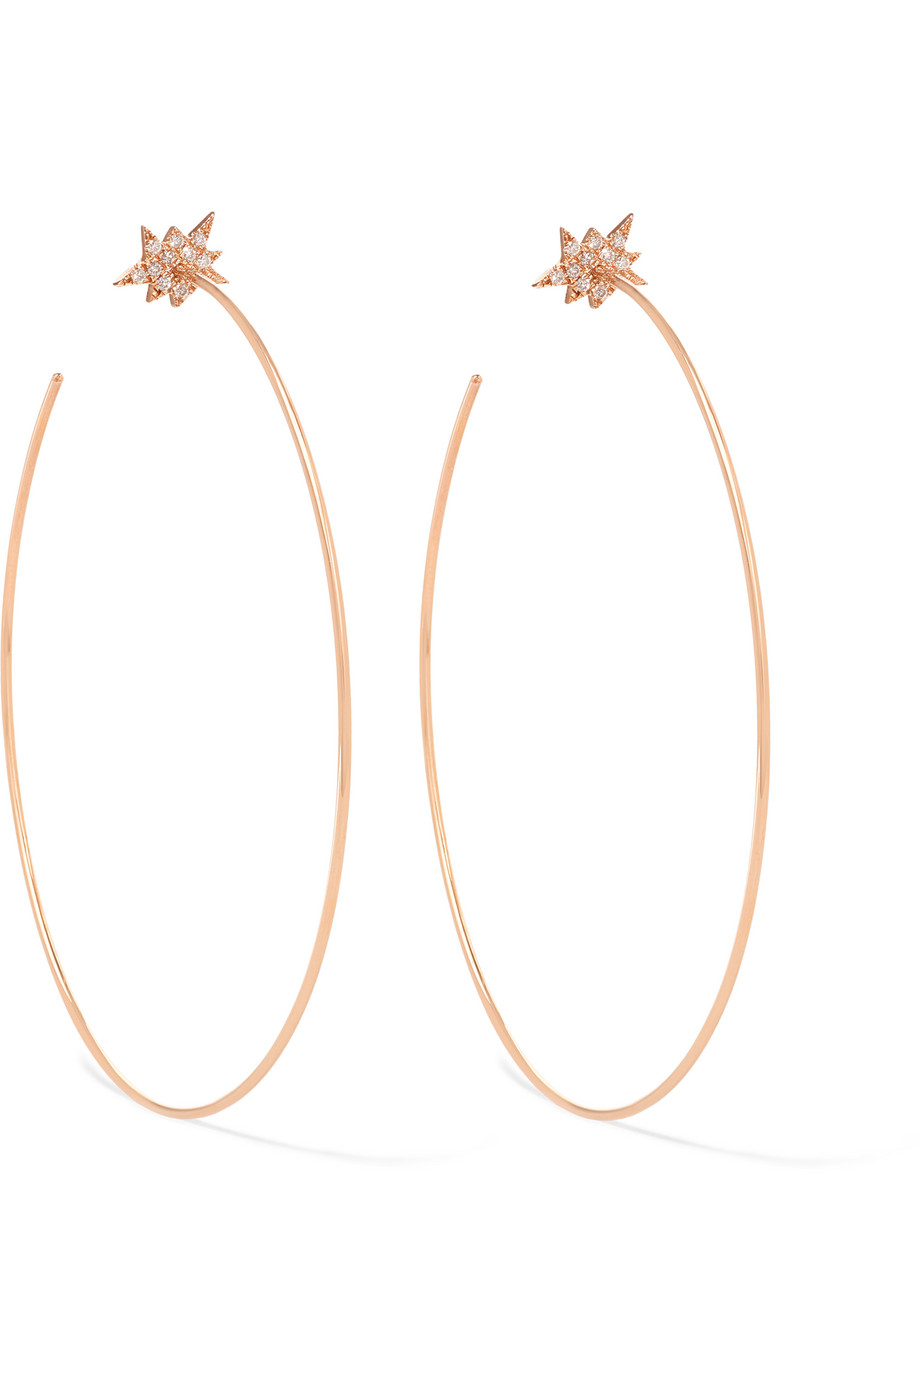 Diane Kordas Explosion 18-Karat Rose Gold Diamond Hoop Earrings, Women's